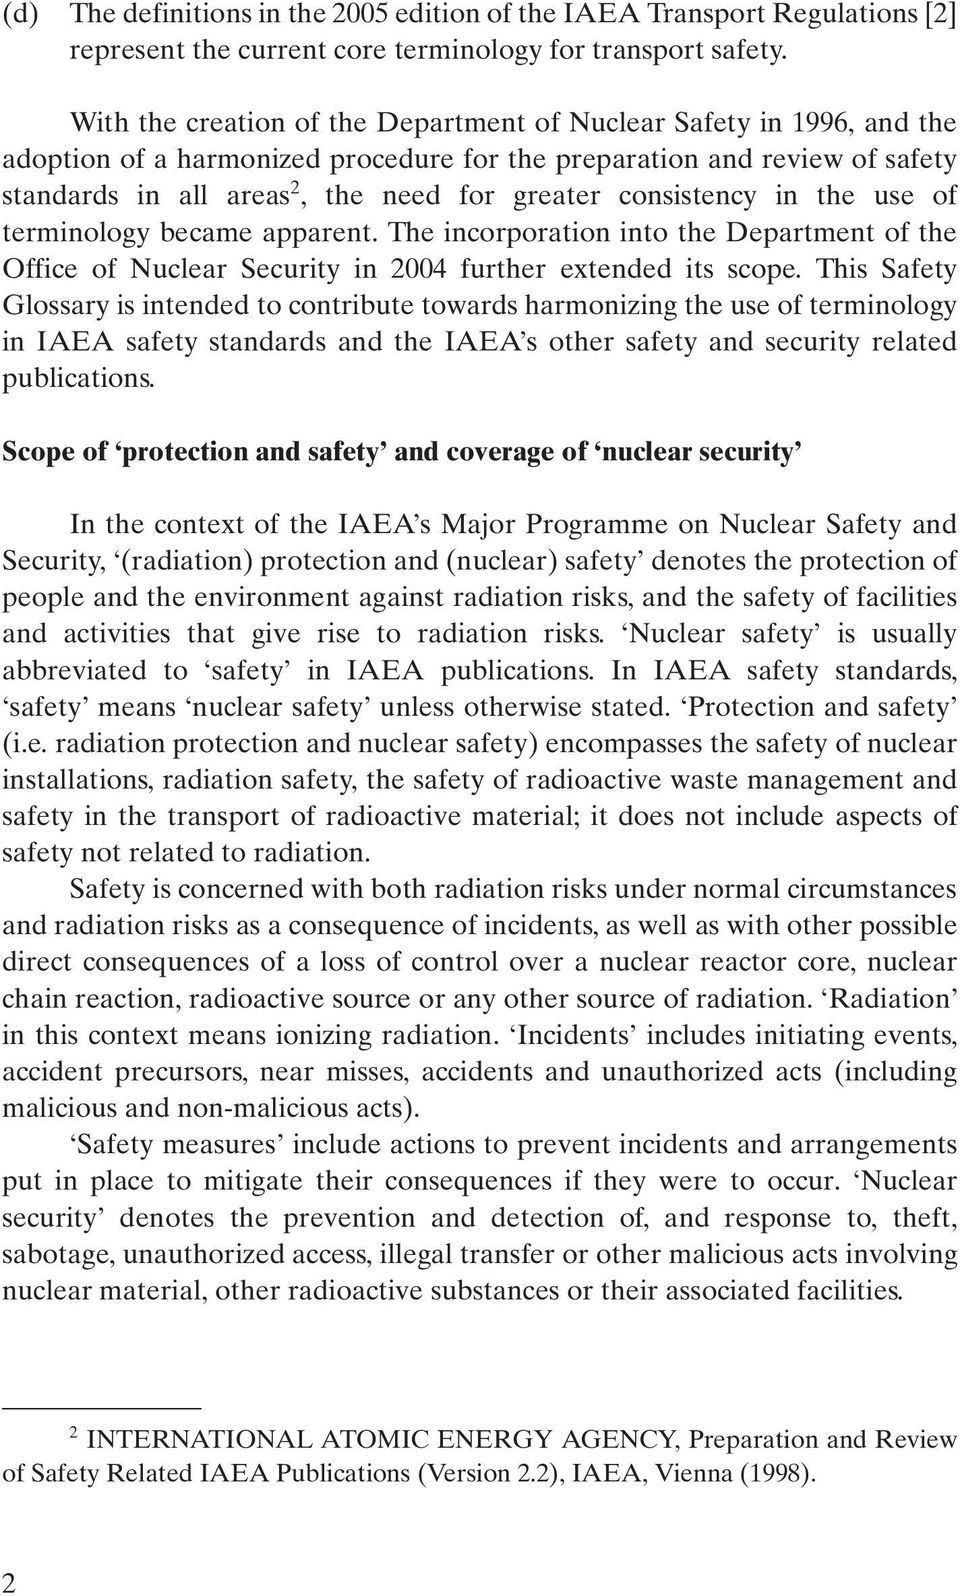 consistency in the use of terminology became apparent. The incorporation into the Department of the Office of Nuclear Security in 2004 further extended its scope.